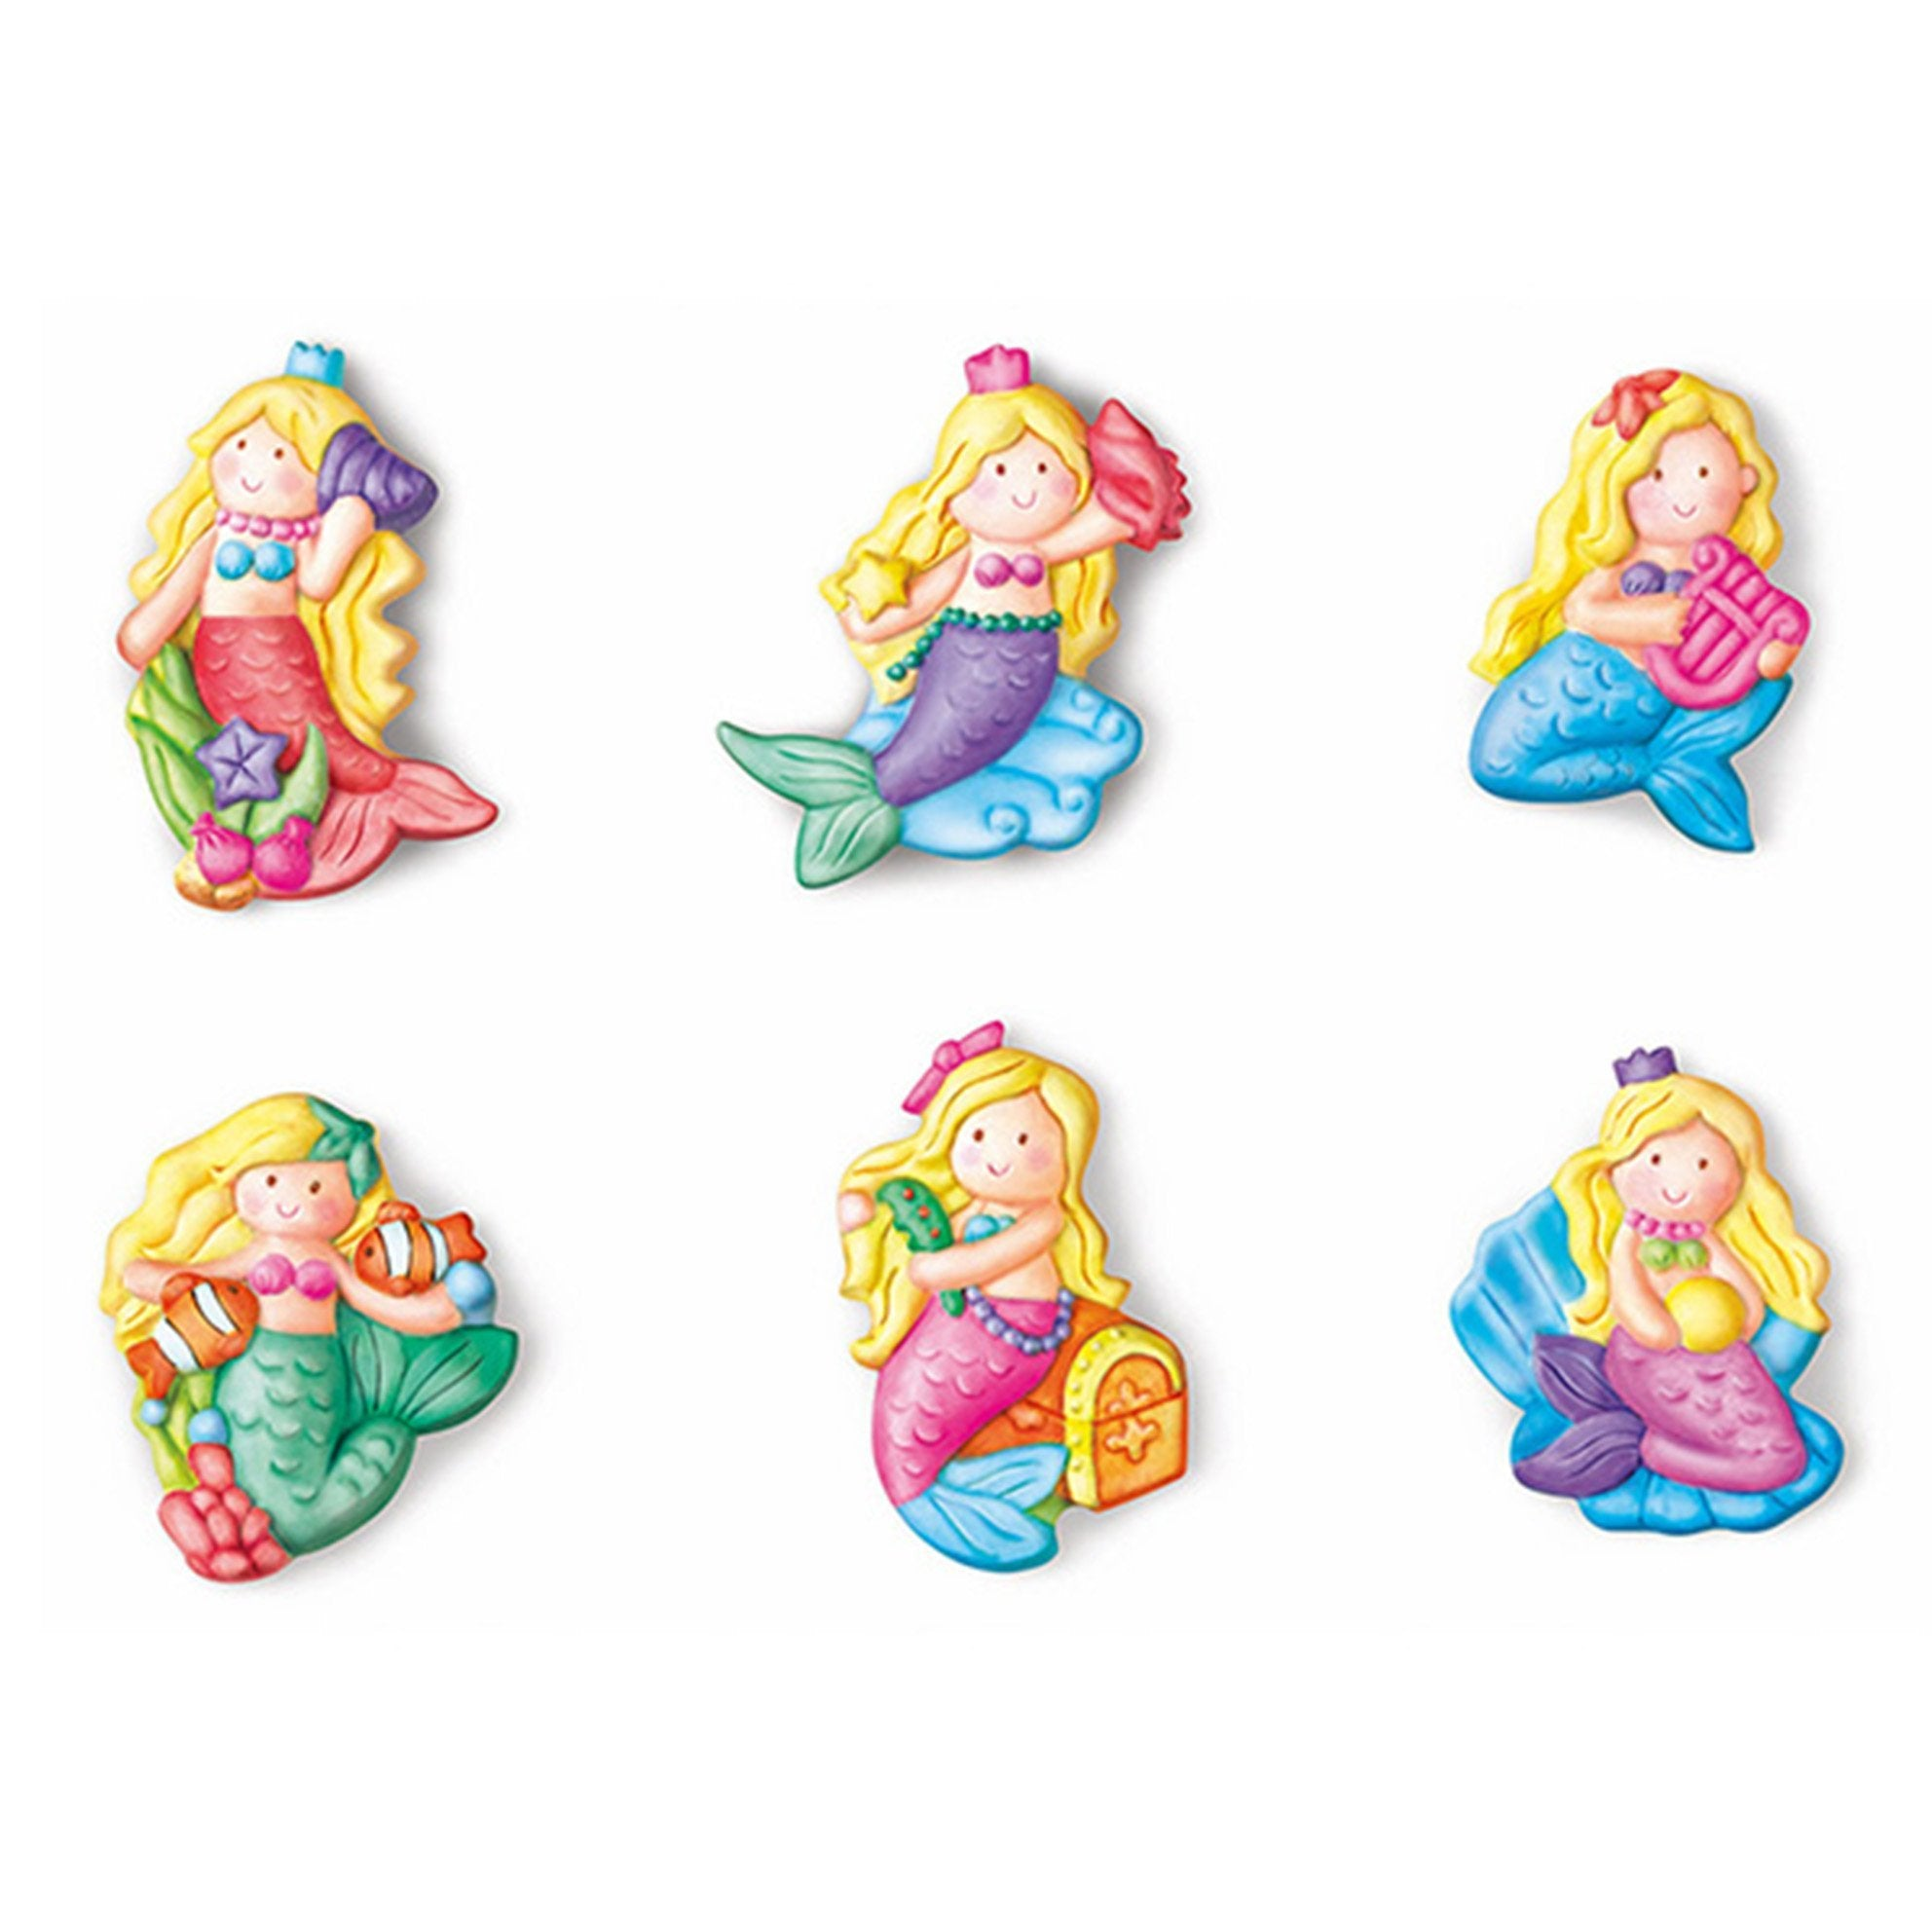 Mould & Paint Glitter Mermaids Casting Kit - - 4M - Yellow Octopus